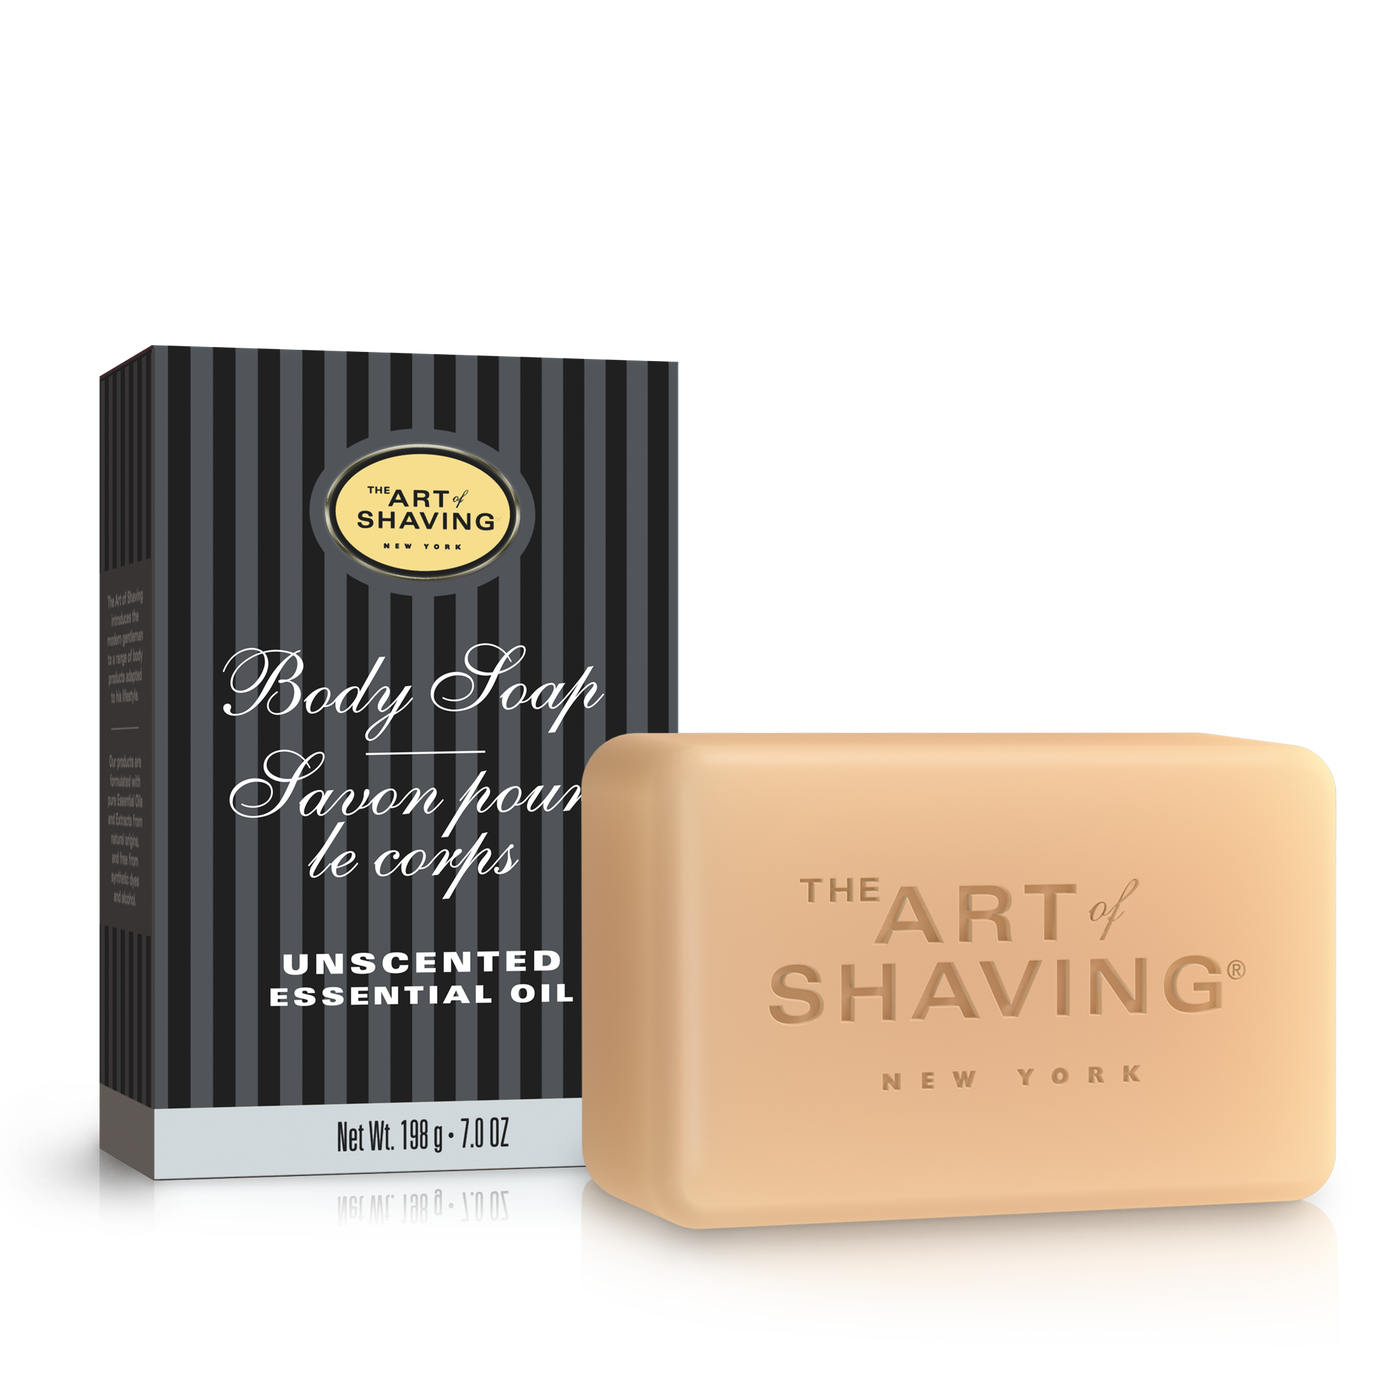 The Art Of Shaving: Body Soap - Unscented